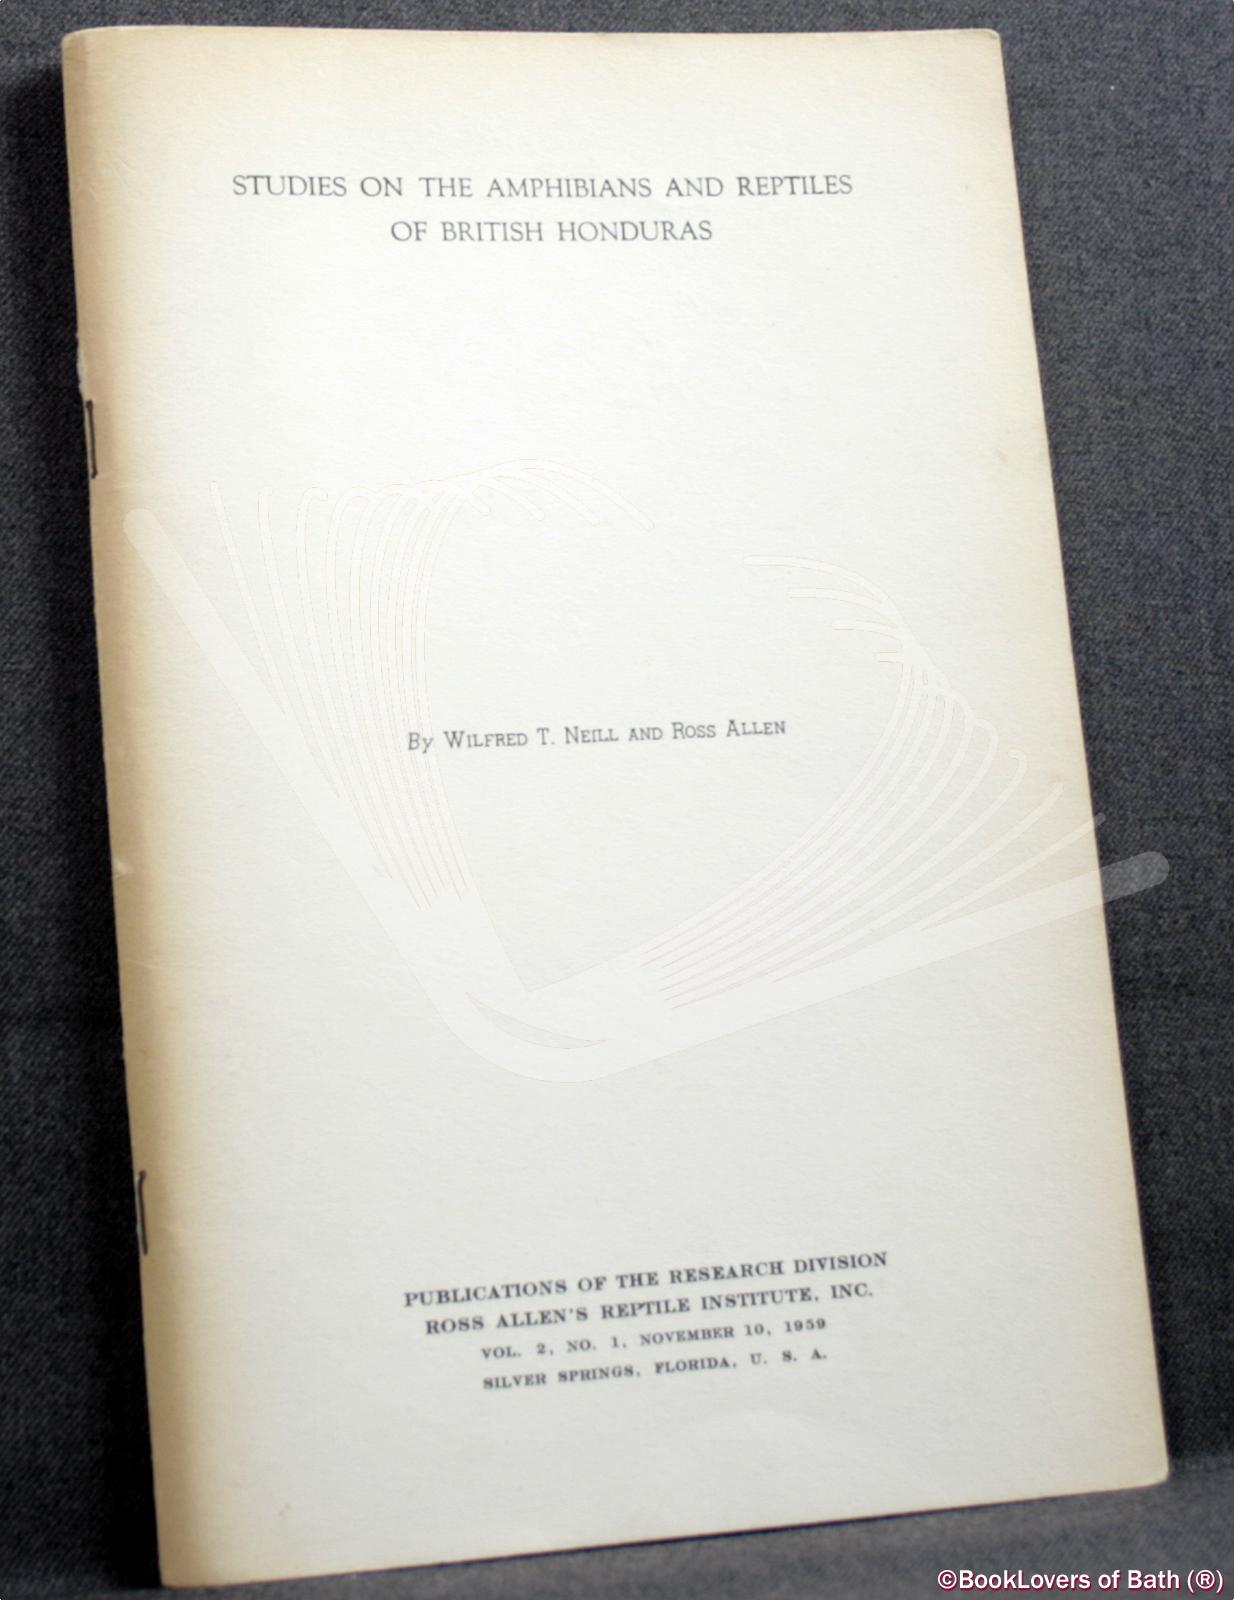 Studies on the Amphibians and Reptiles Df British Honduras - Wilfred T. Neill & Ross Allen